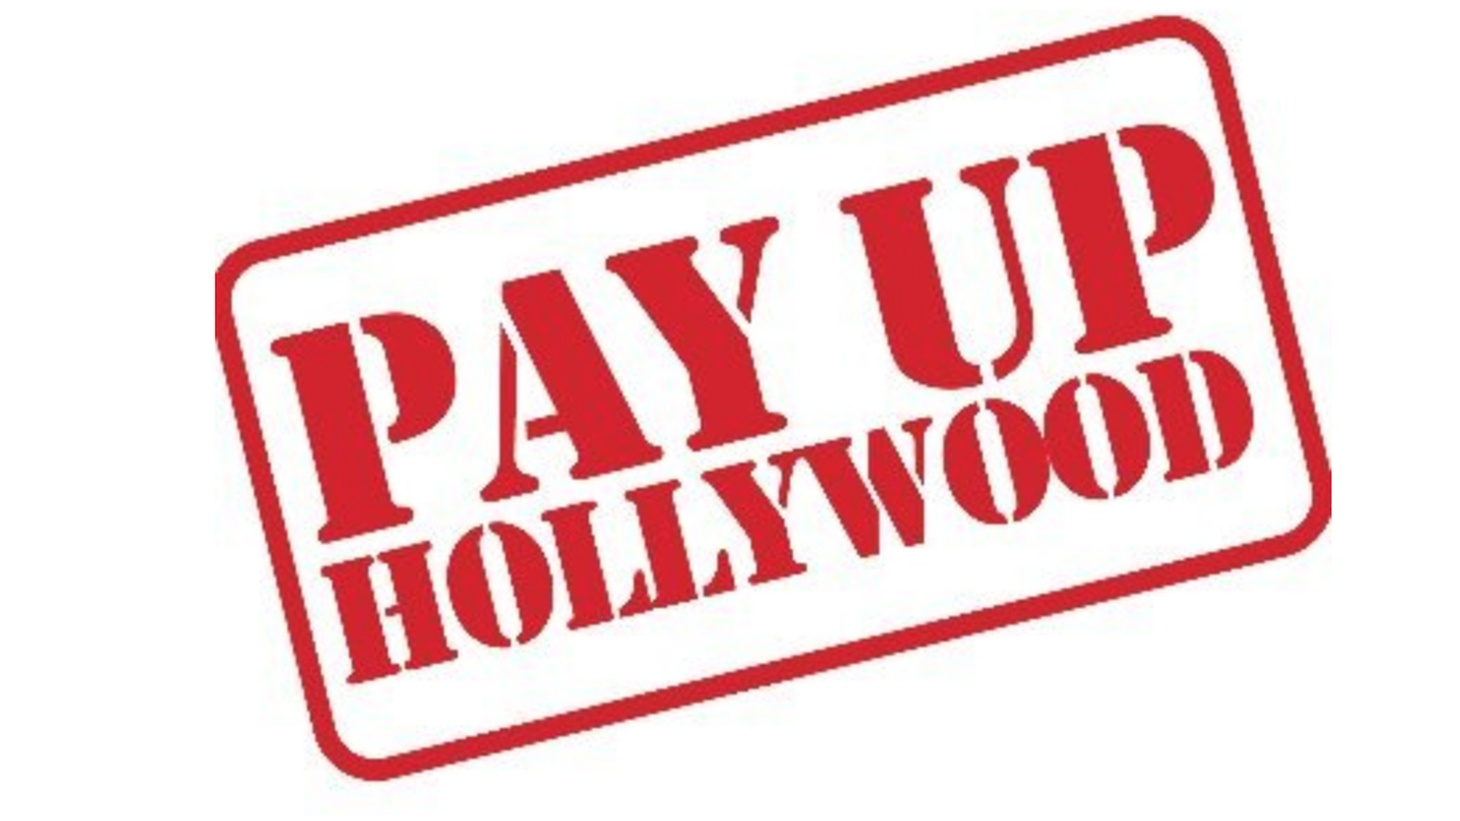 PayUpHollywood logo.